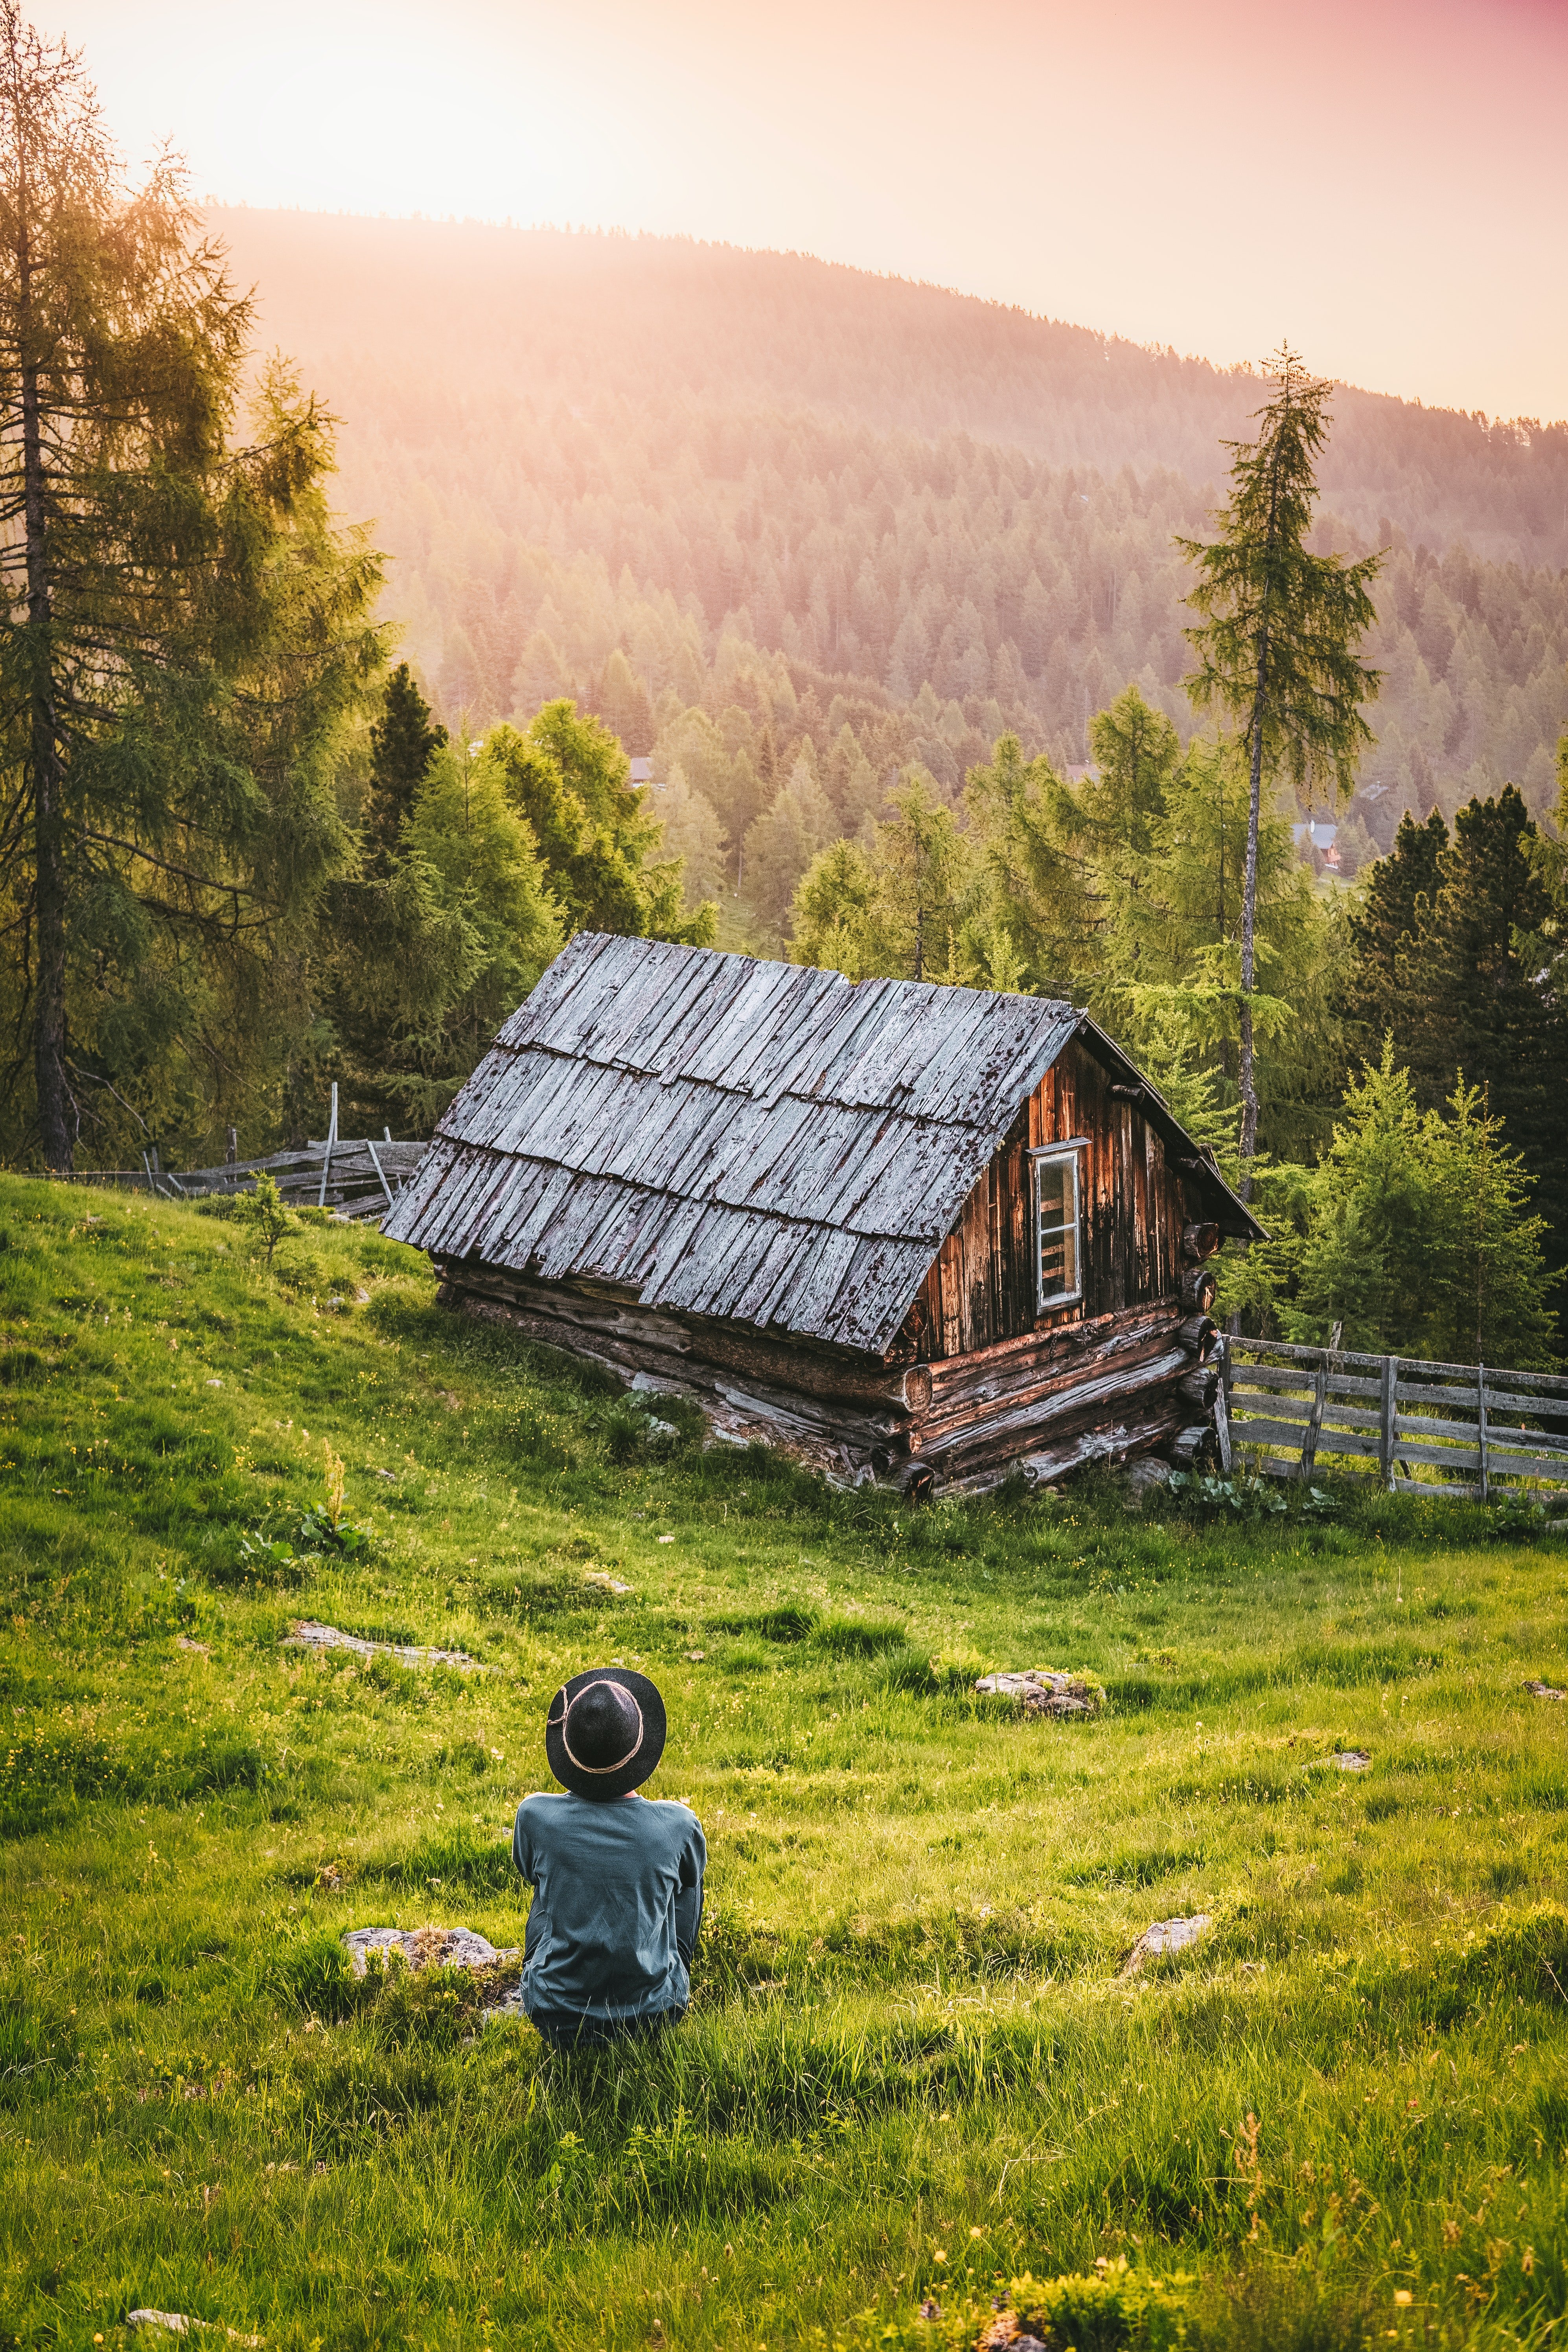 The writer moved to the countryside to dedicate more time to his writing. | Photo: Pexels